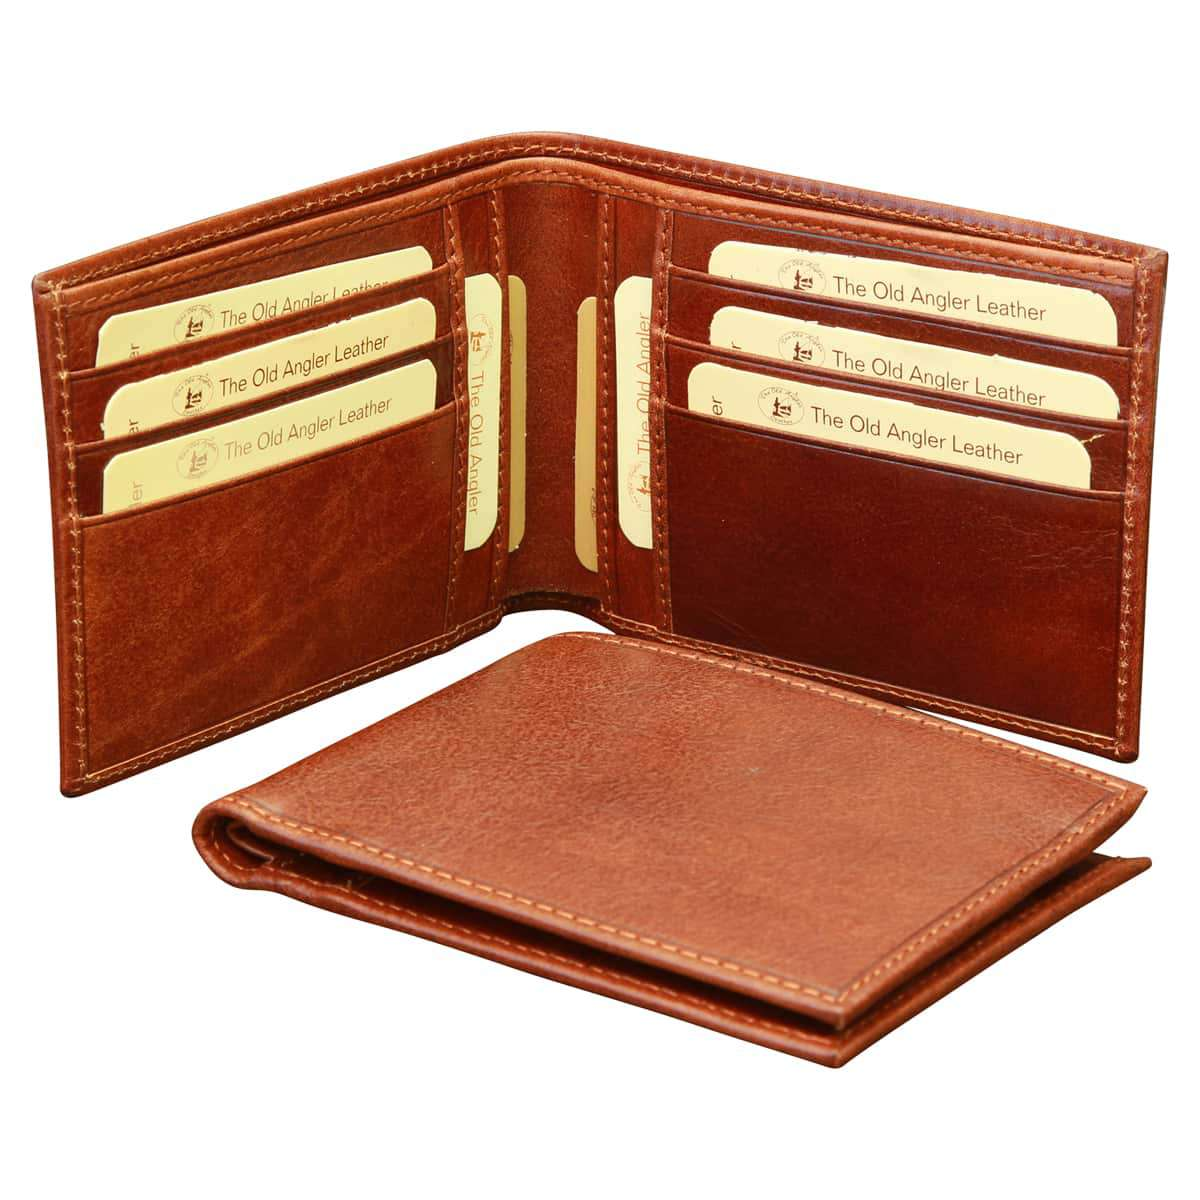 Cowhide leather Bifold Wallet - Brown | 800905MA UK | Old Angler Firenze